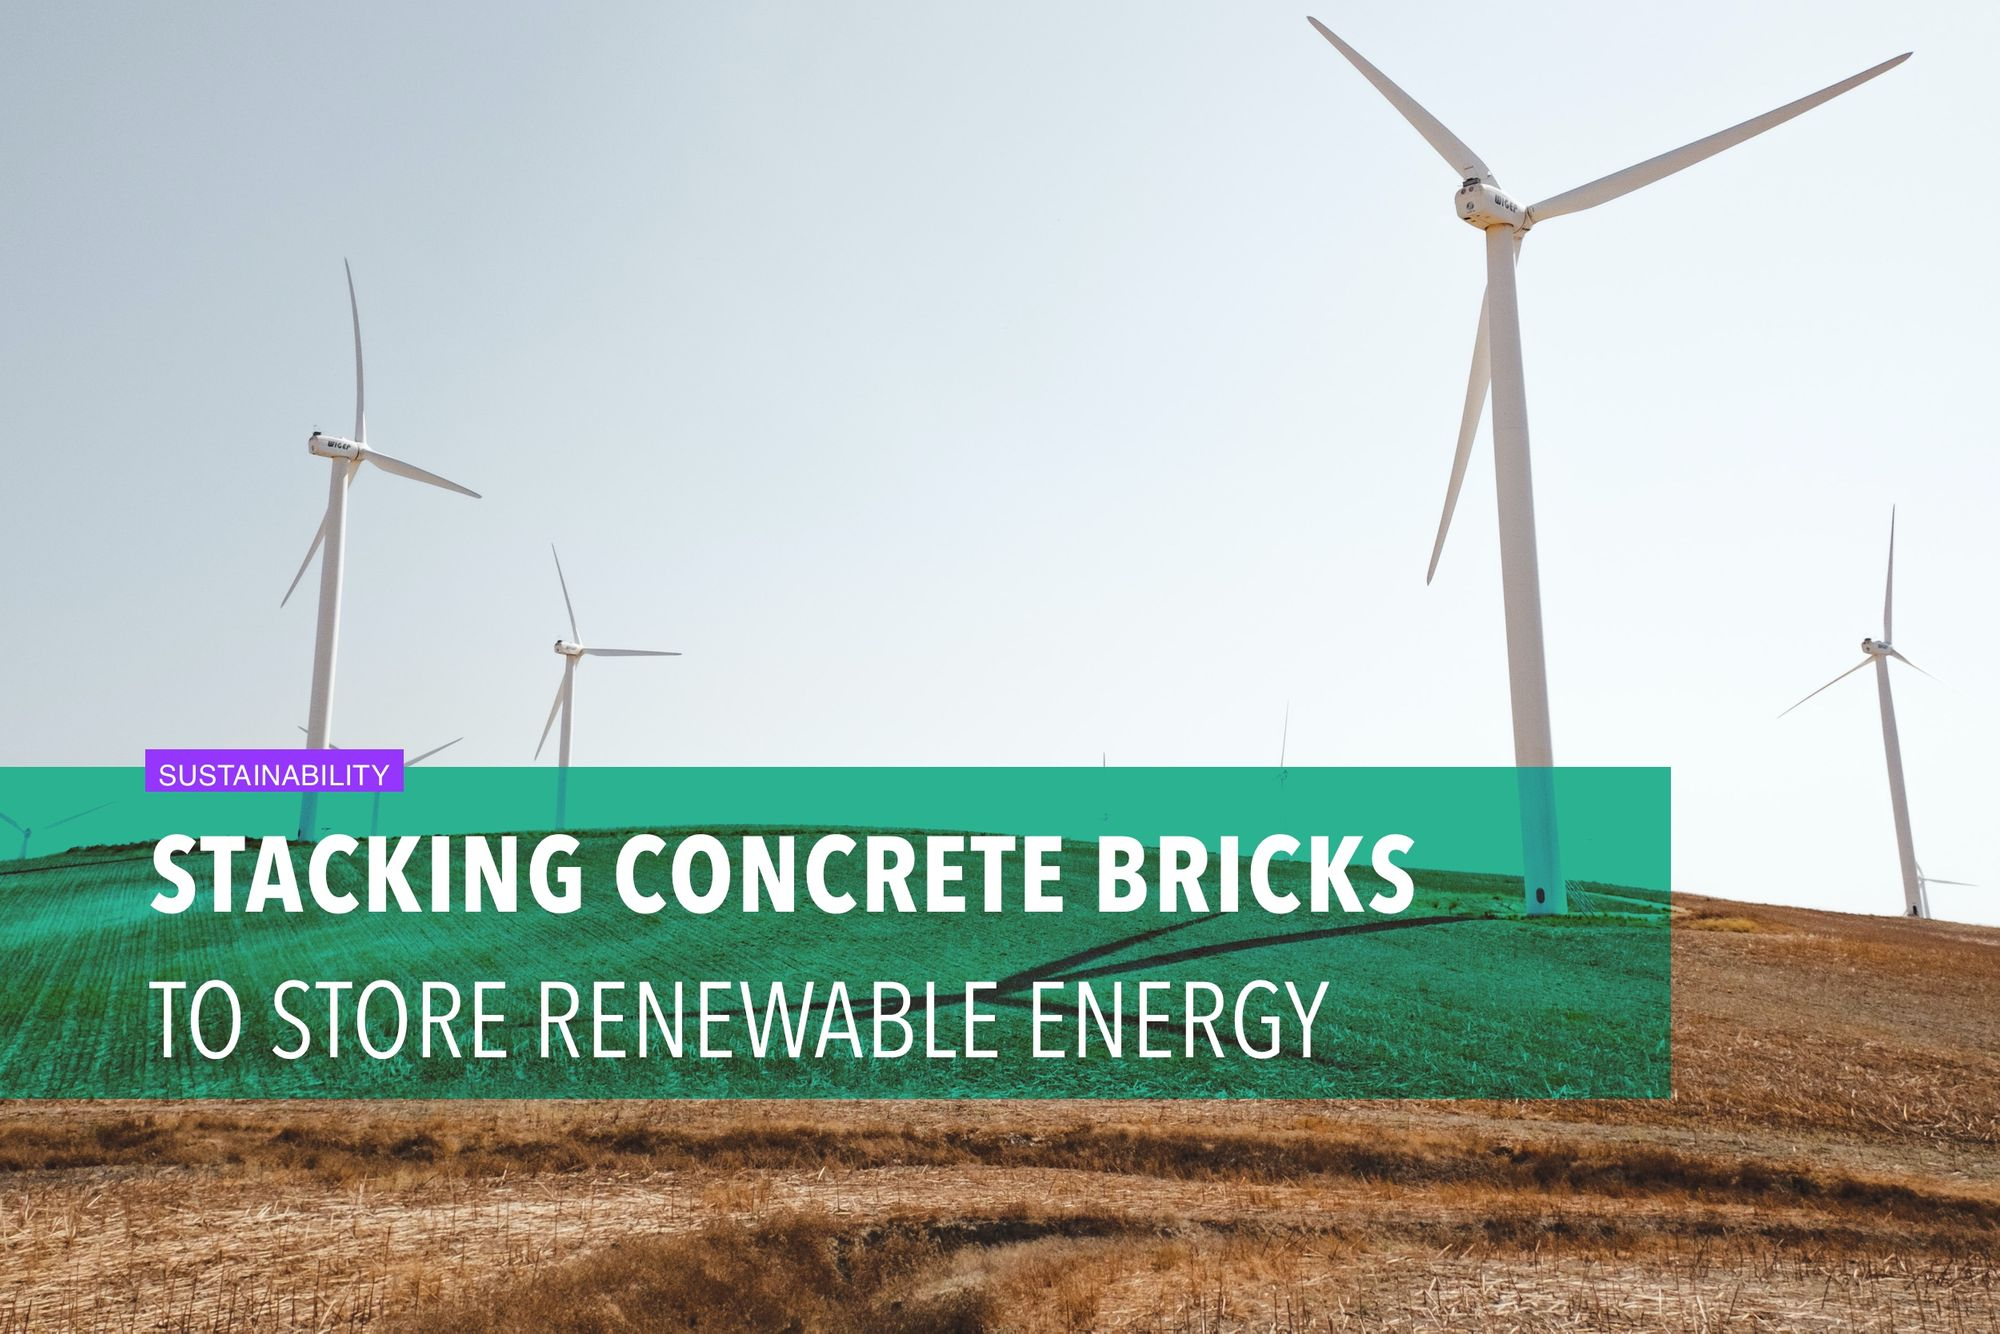 Stacking concrete bricks to store renewable energy